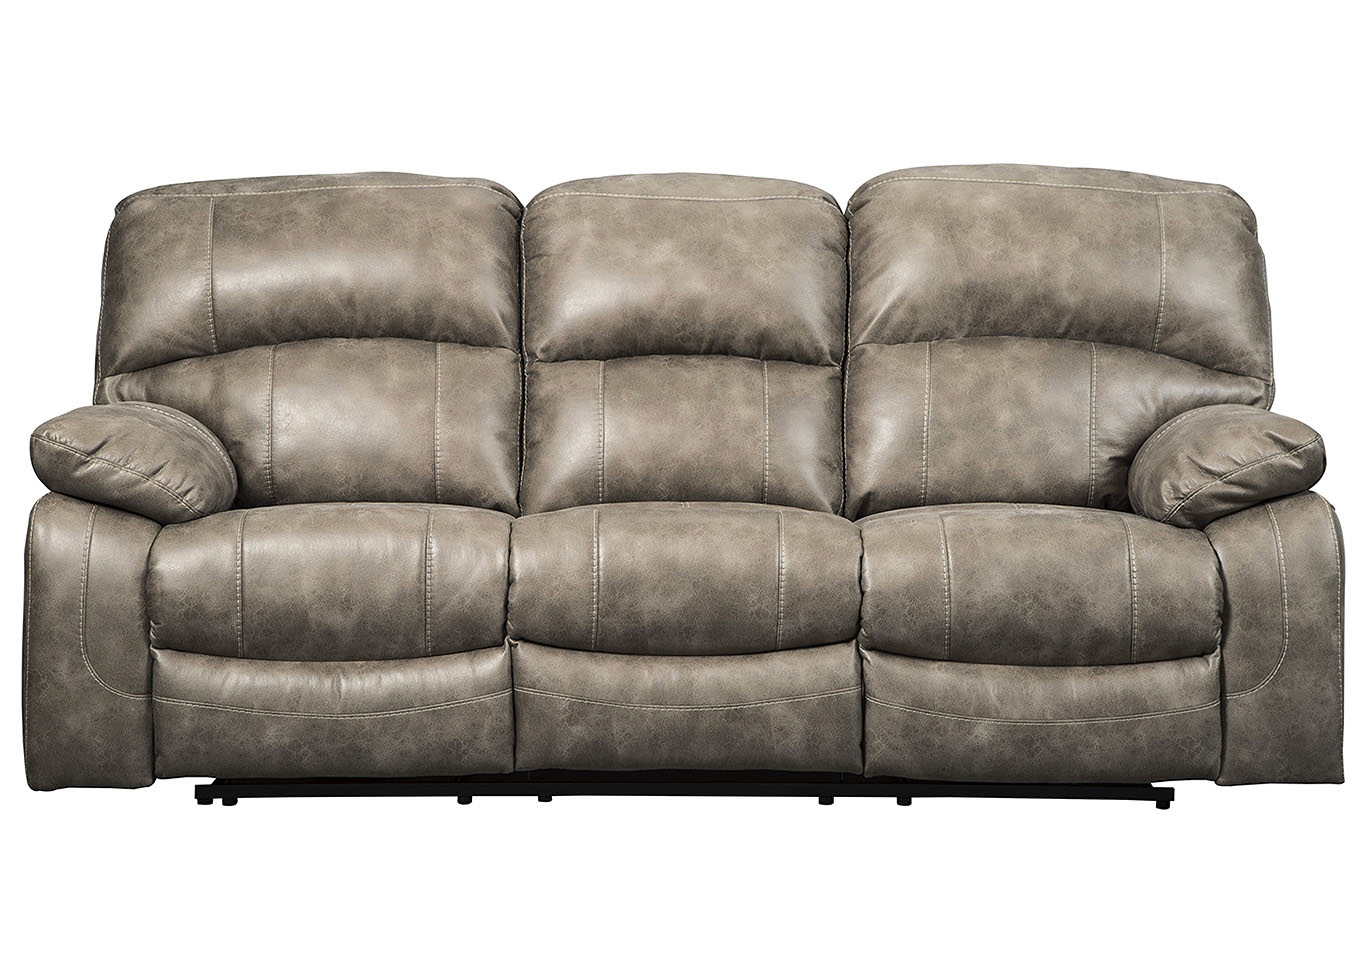 Dunwell Driftwood Power Recliner Sofa,Signature Design By Ashley